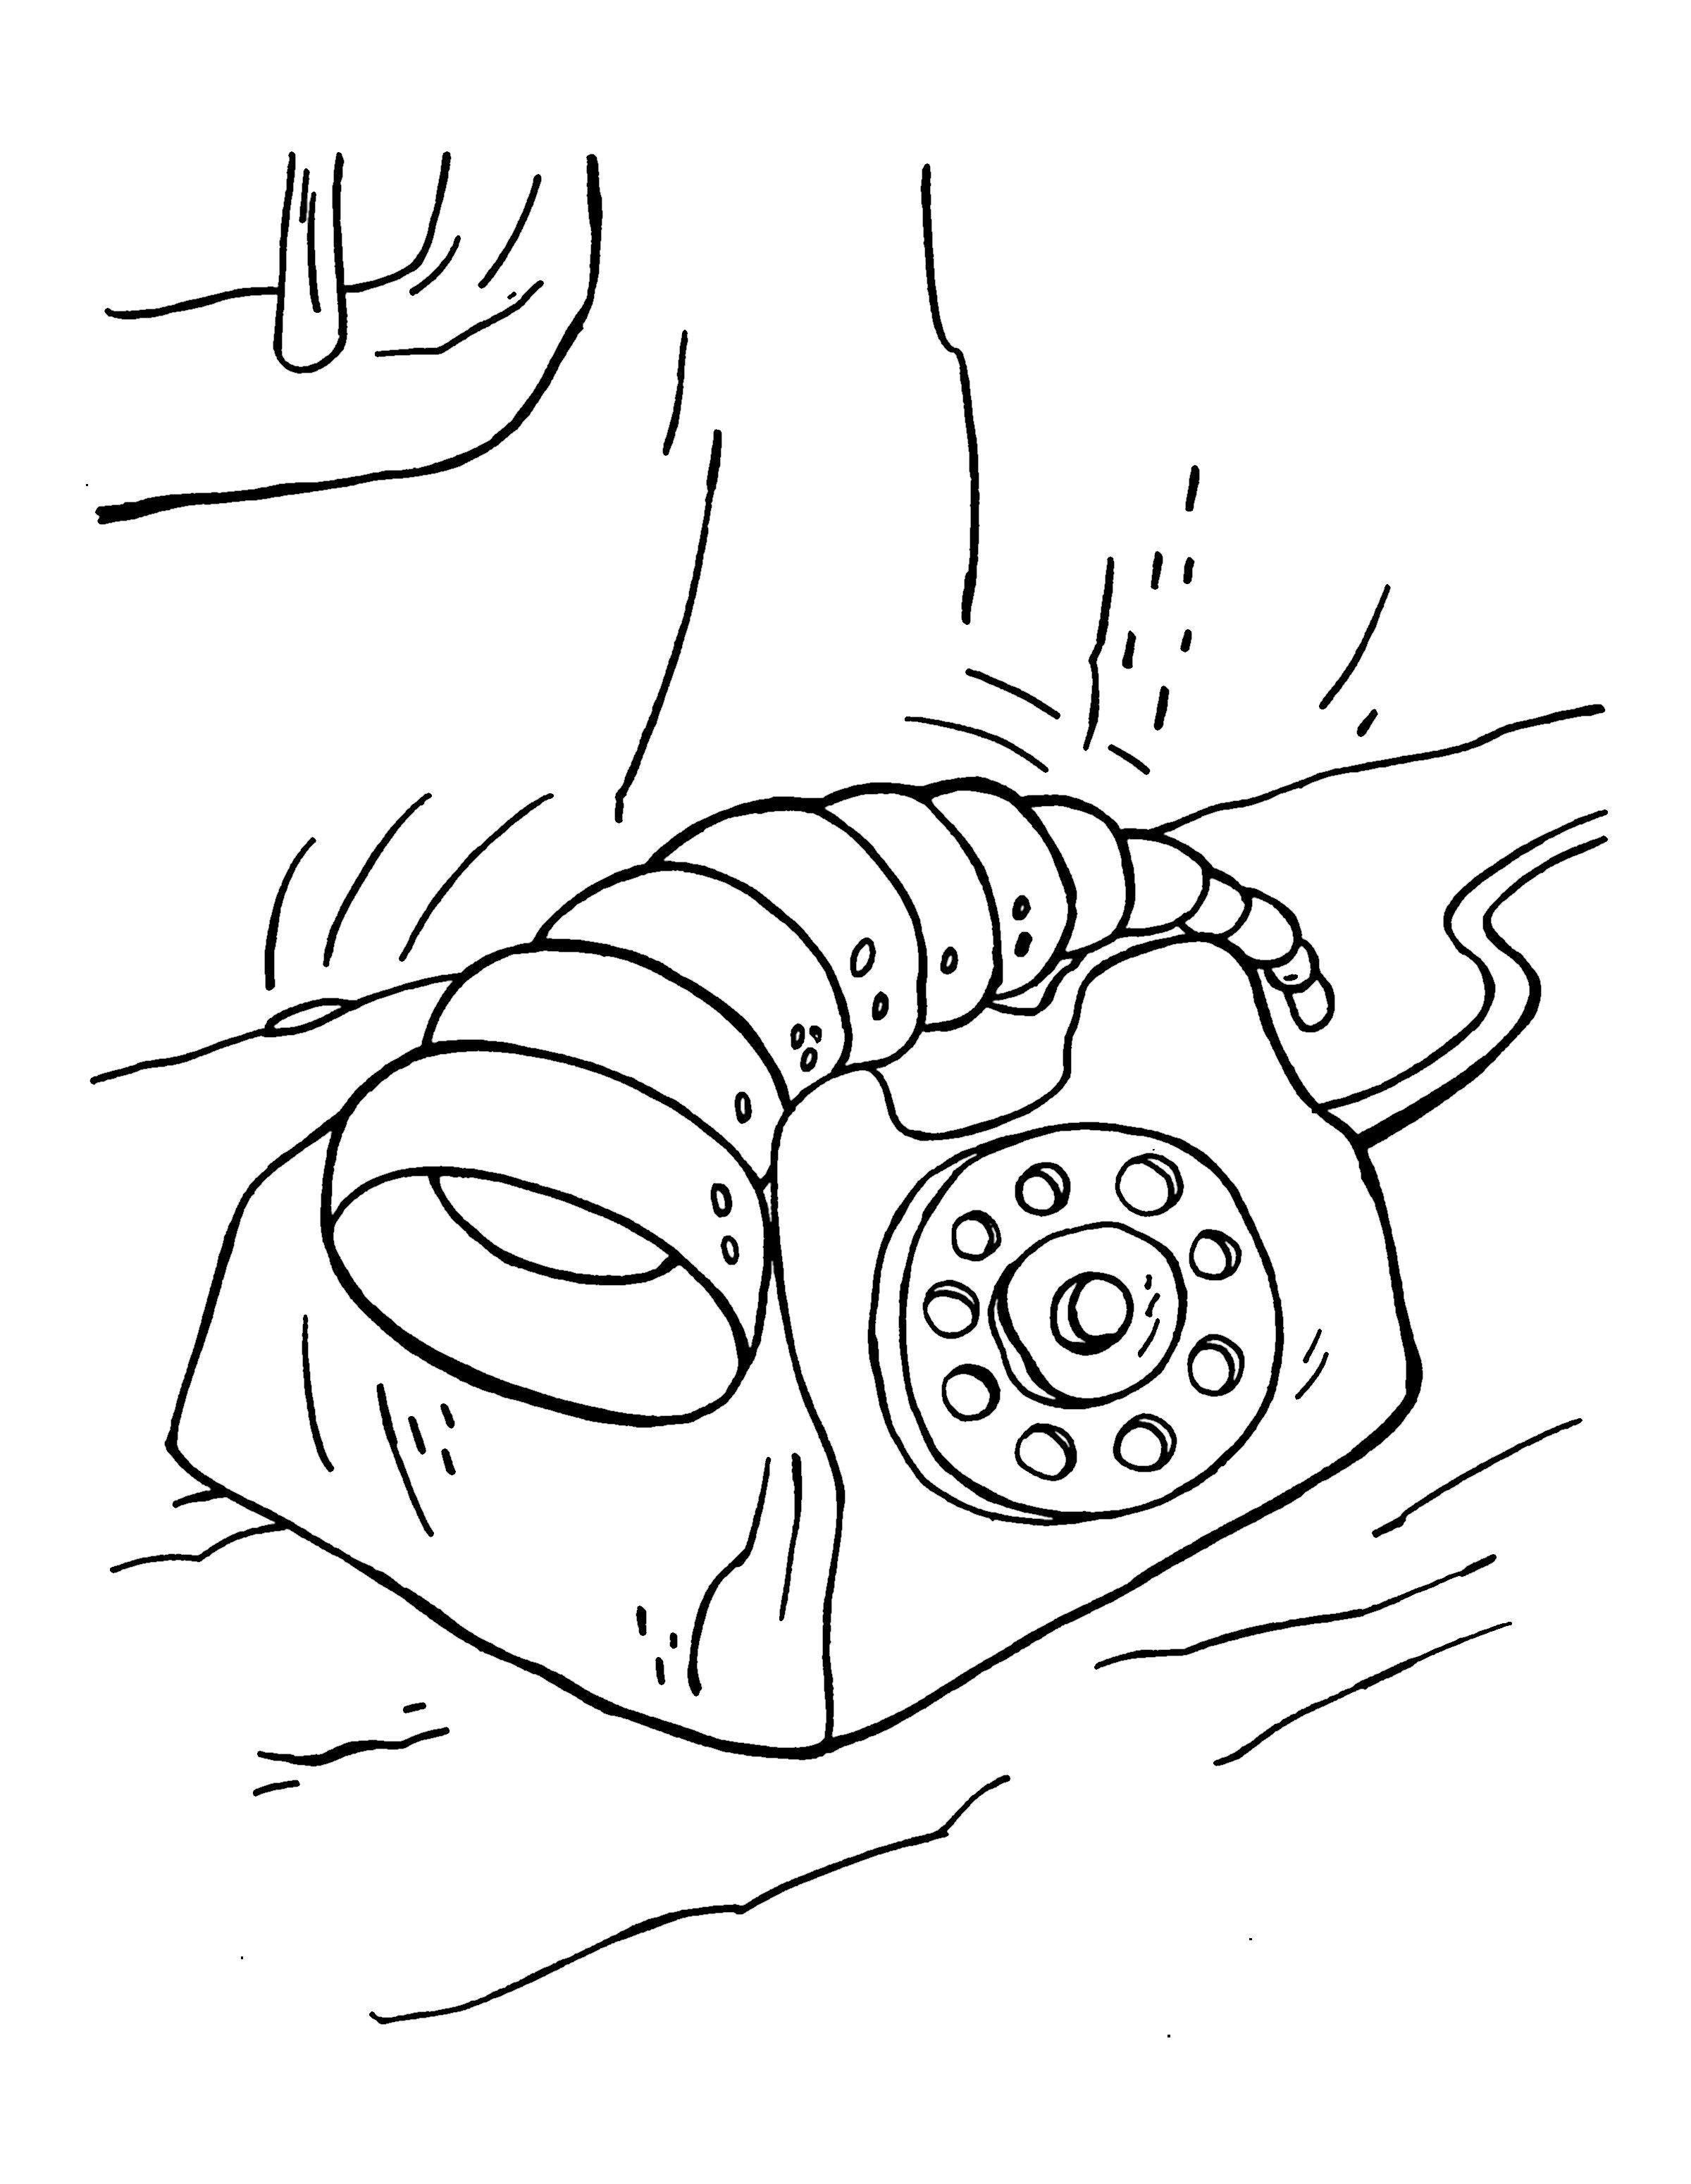 The flintstones coloring pages coloring pages for kids